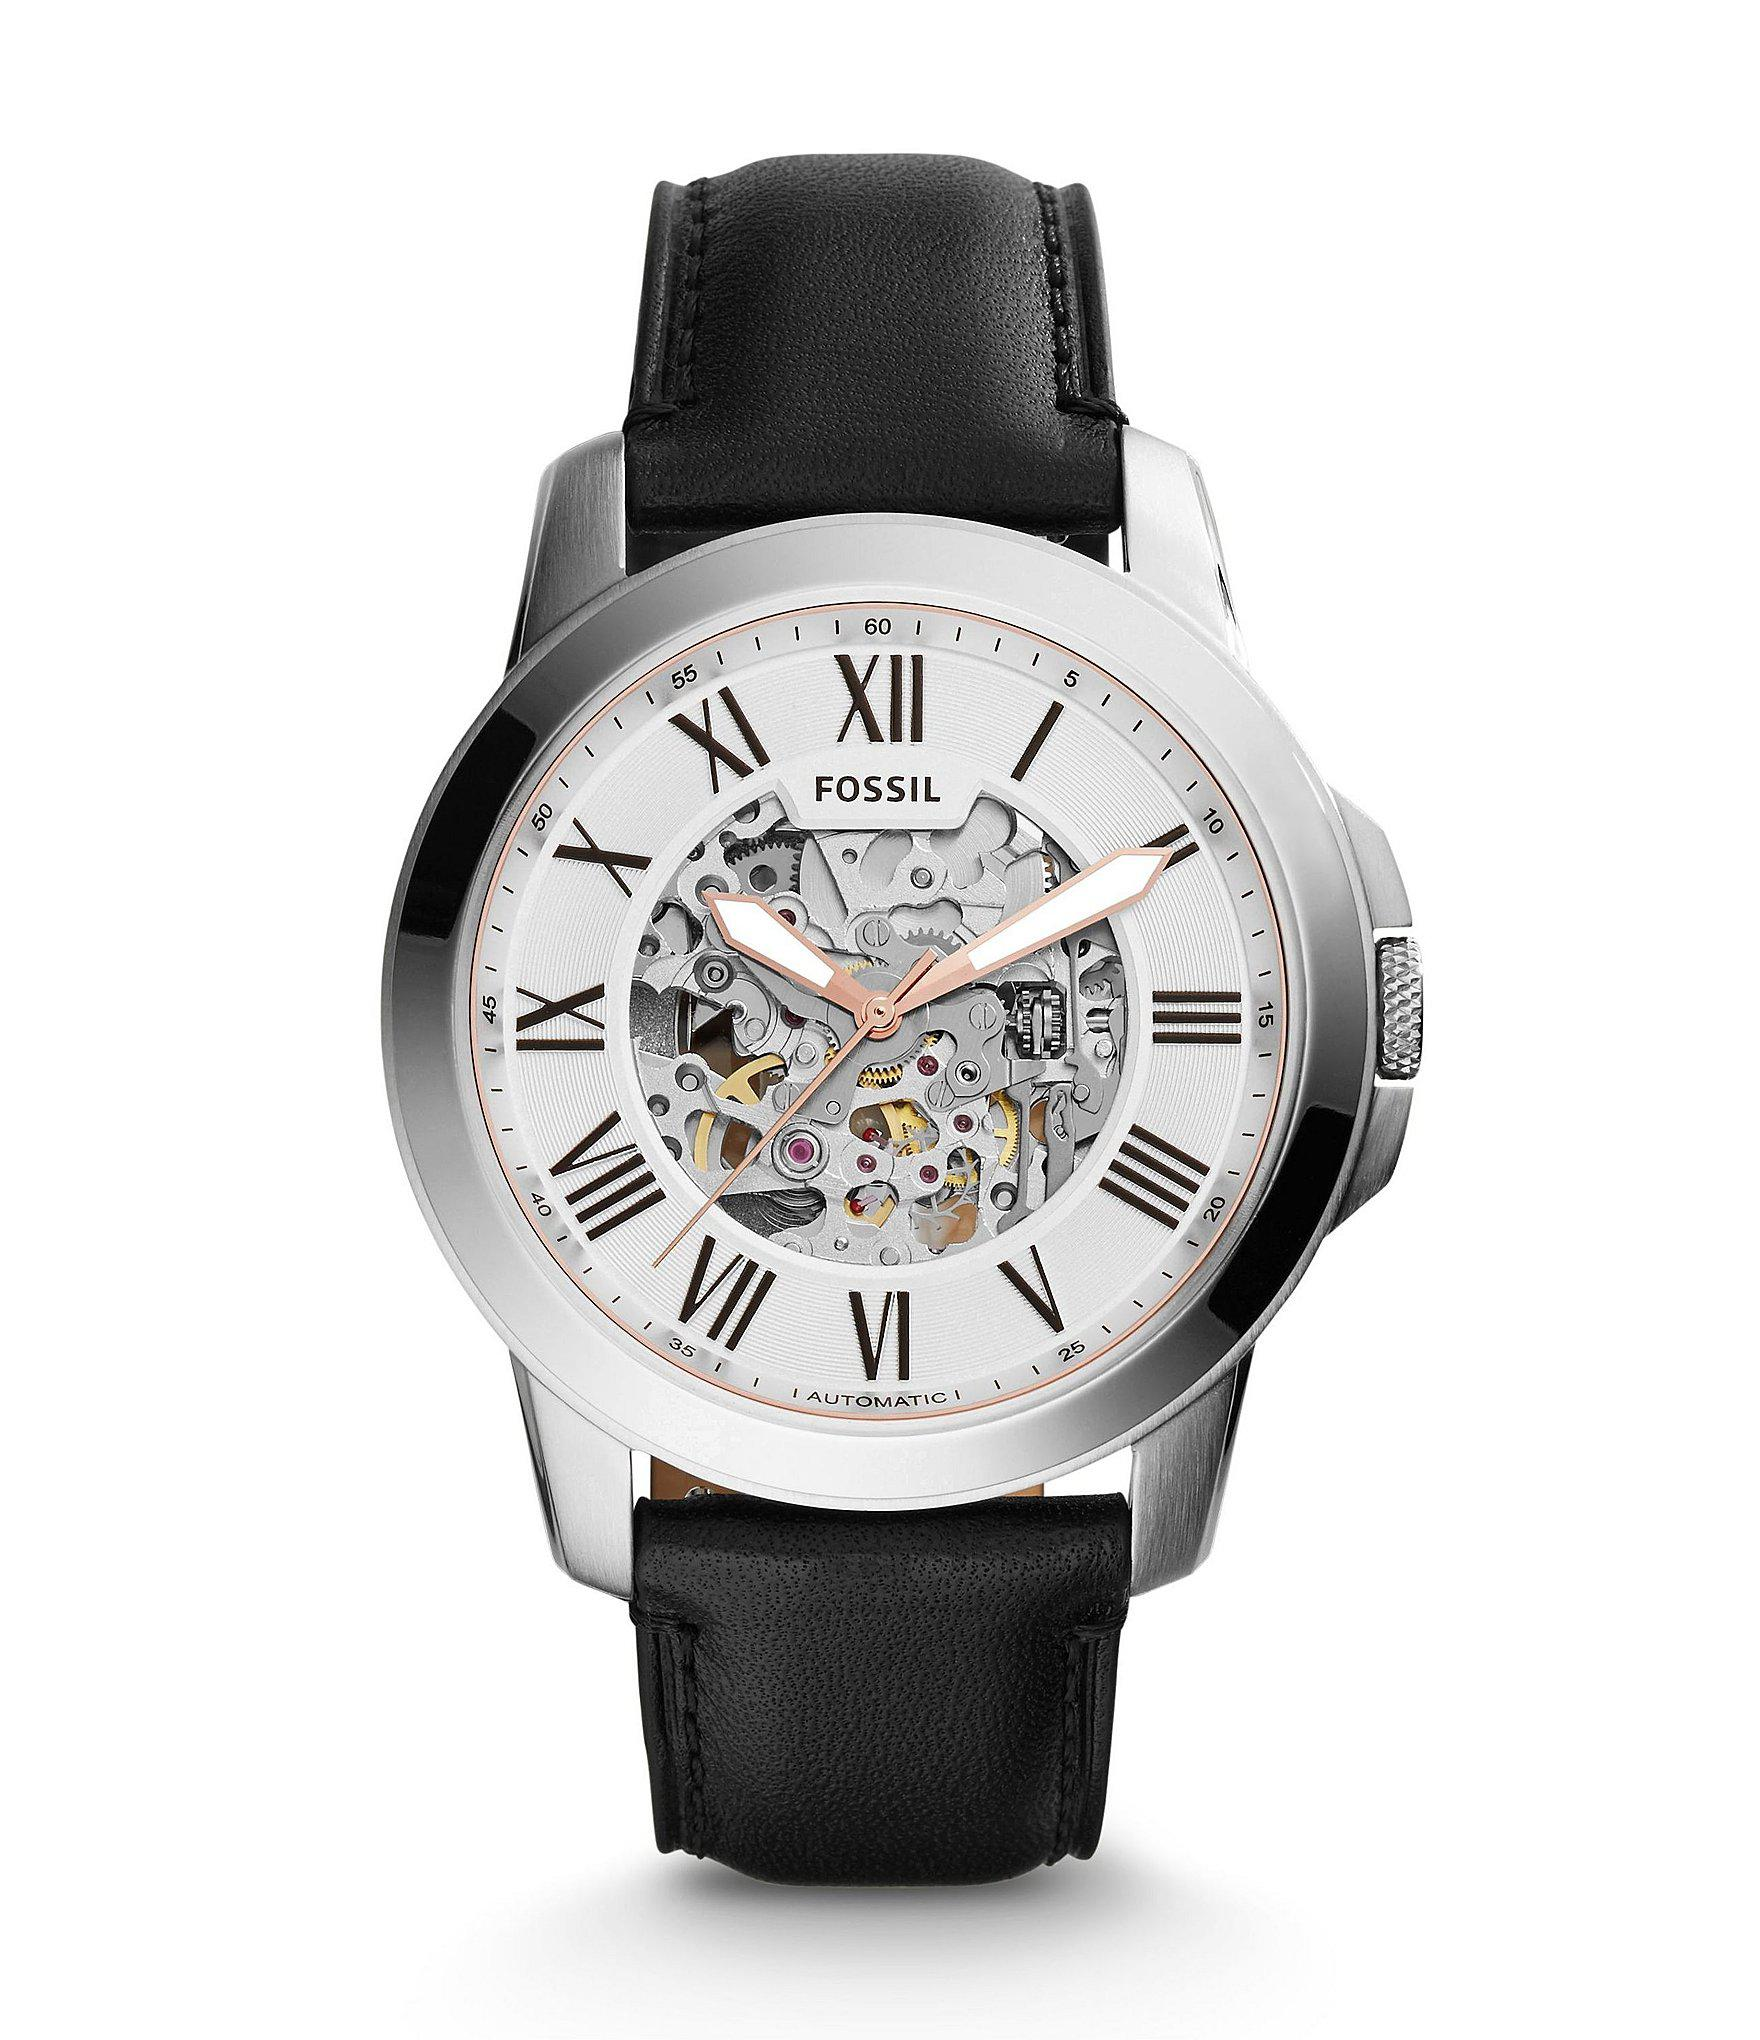 Lyst Fossil Grant Automatic Stainless Steel Watch In Black For Men Fs4736 View Fullscreen